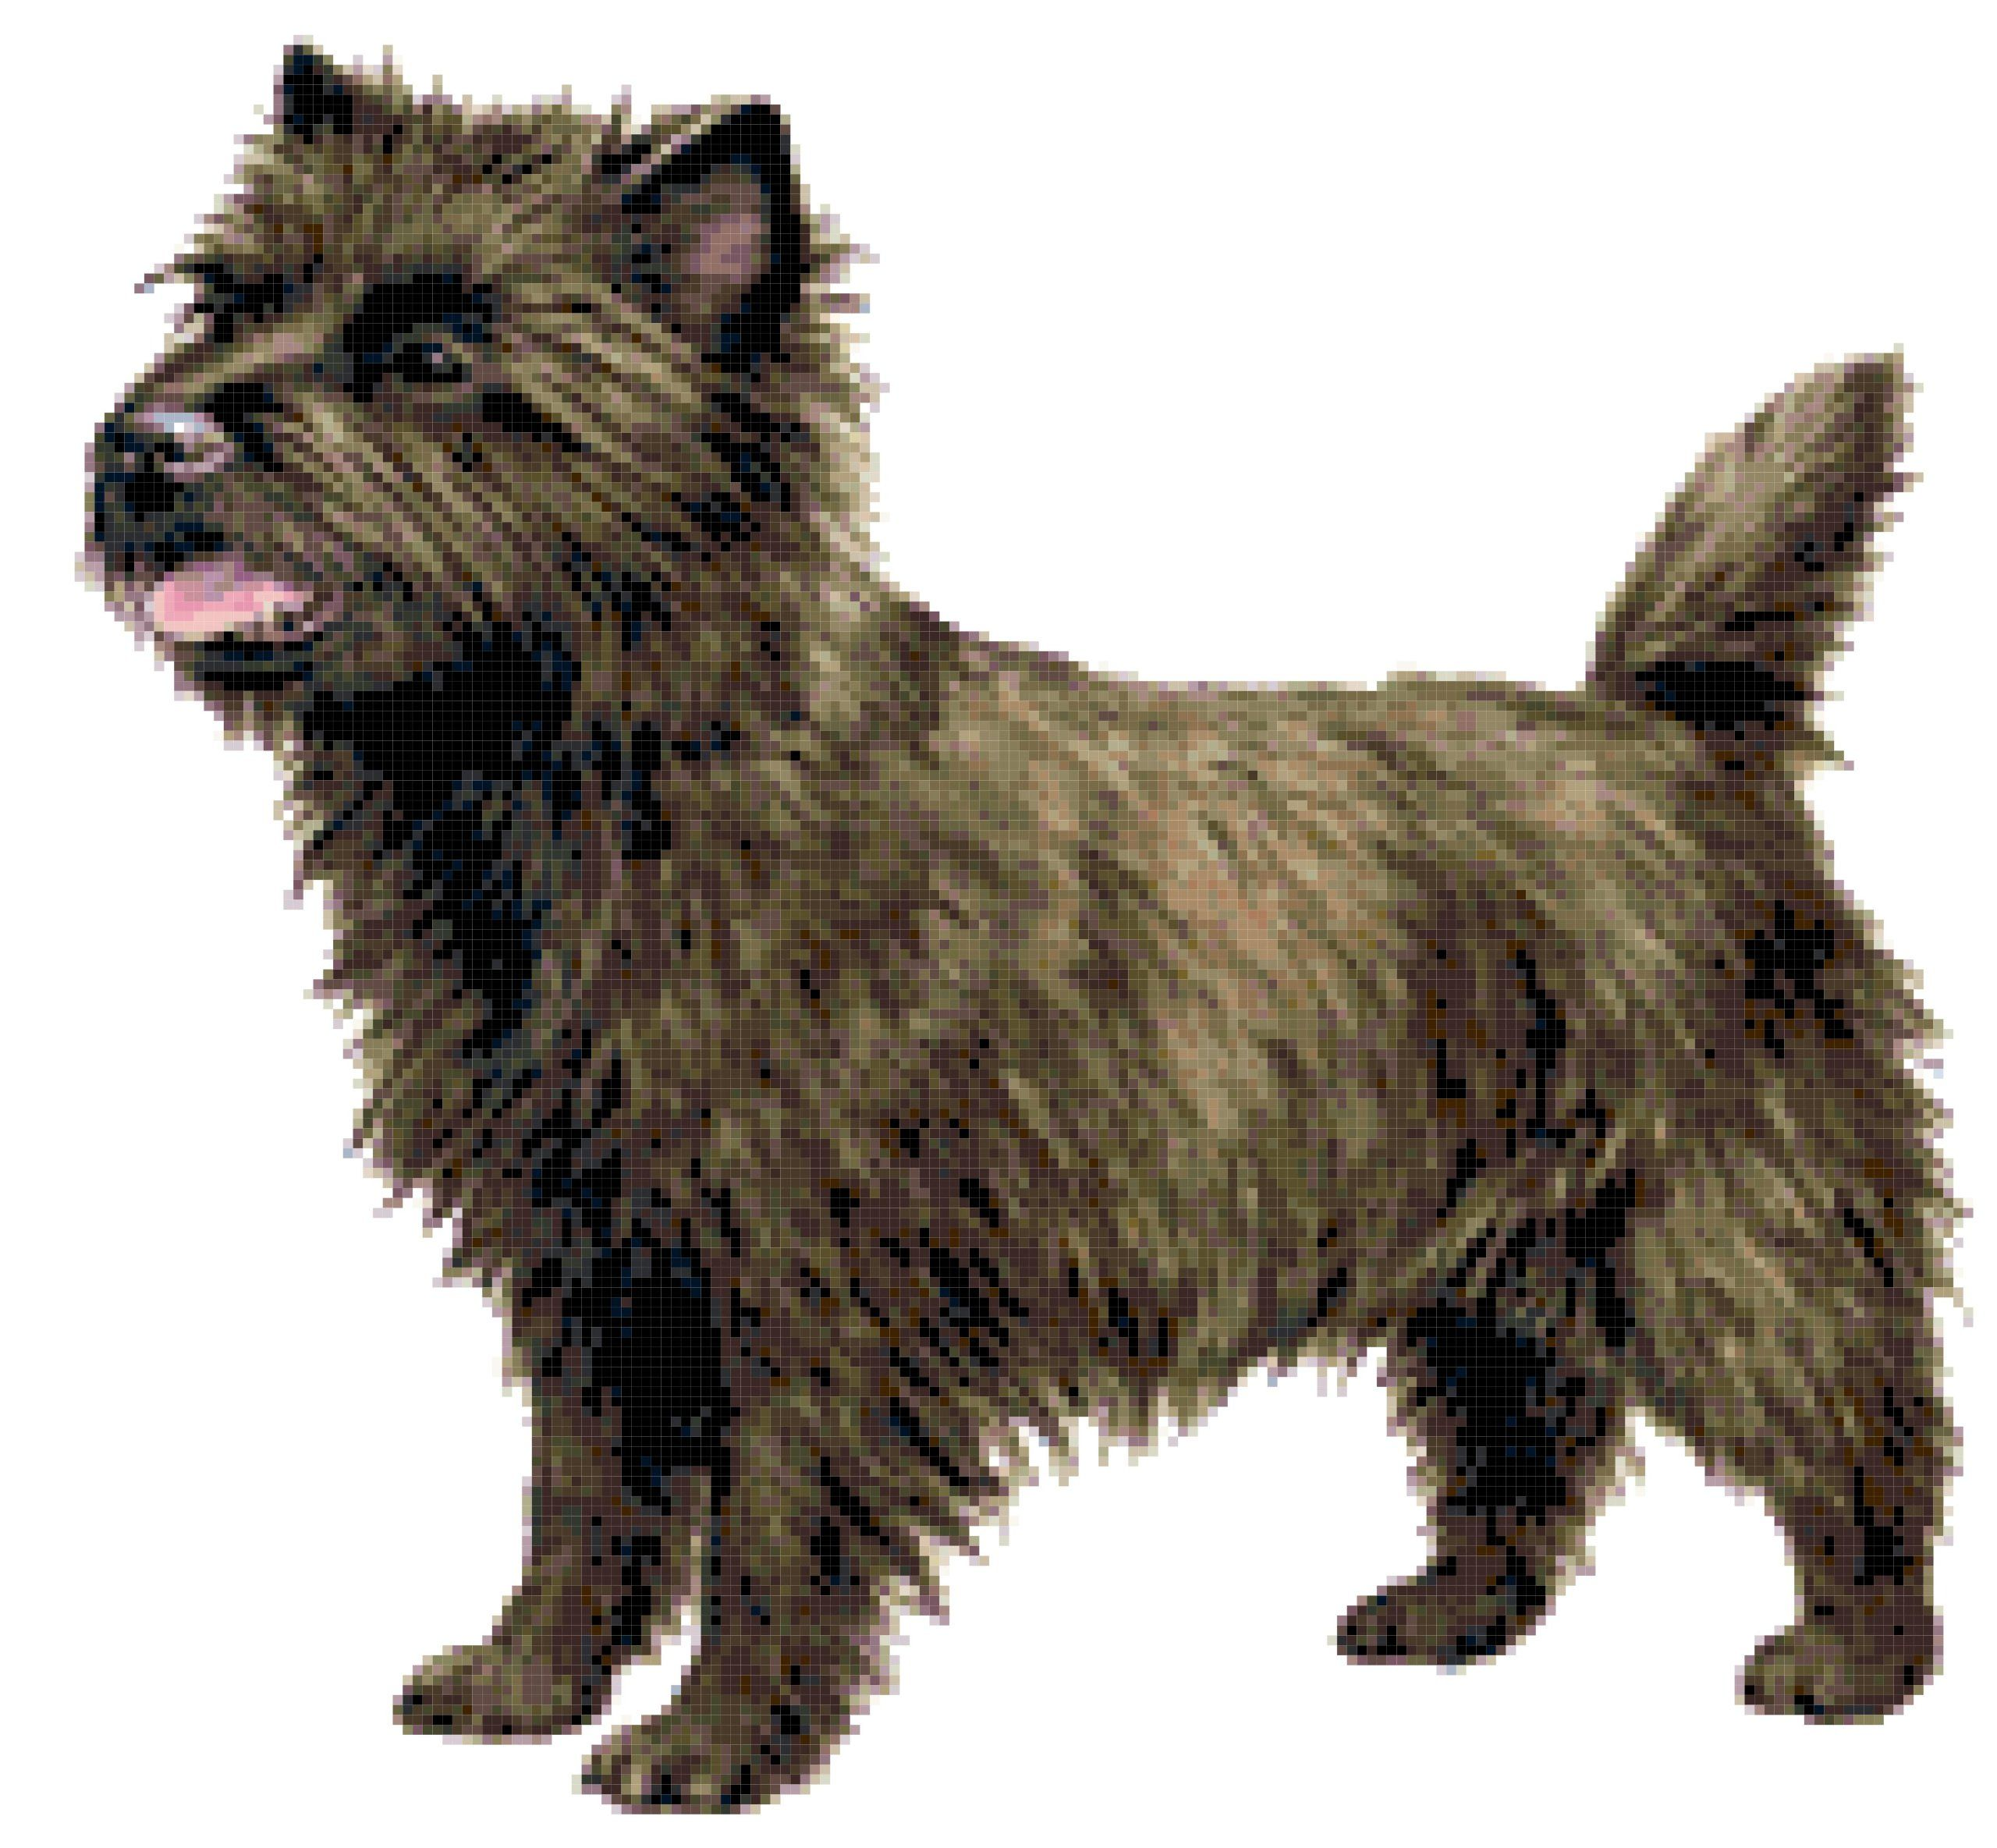 Cairn Terrier Dog Counted Cross Stitch Pattern Stitch Count 200w